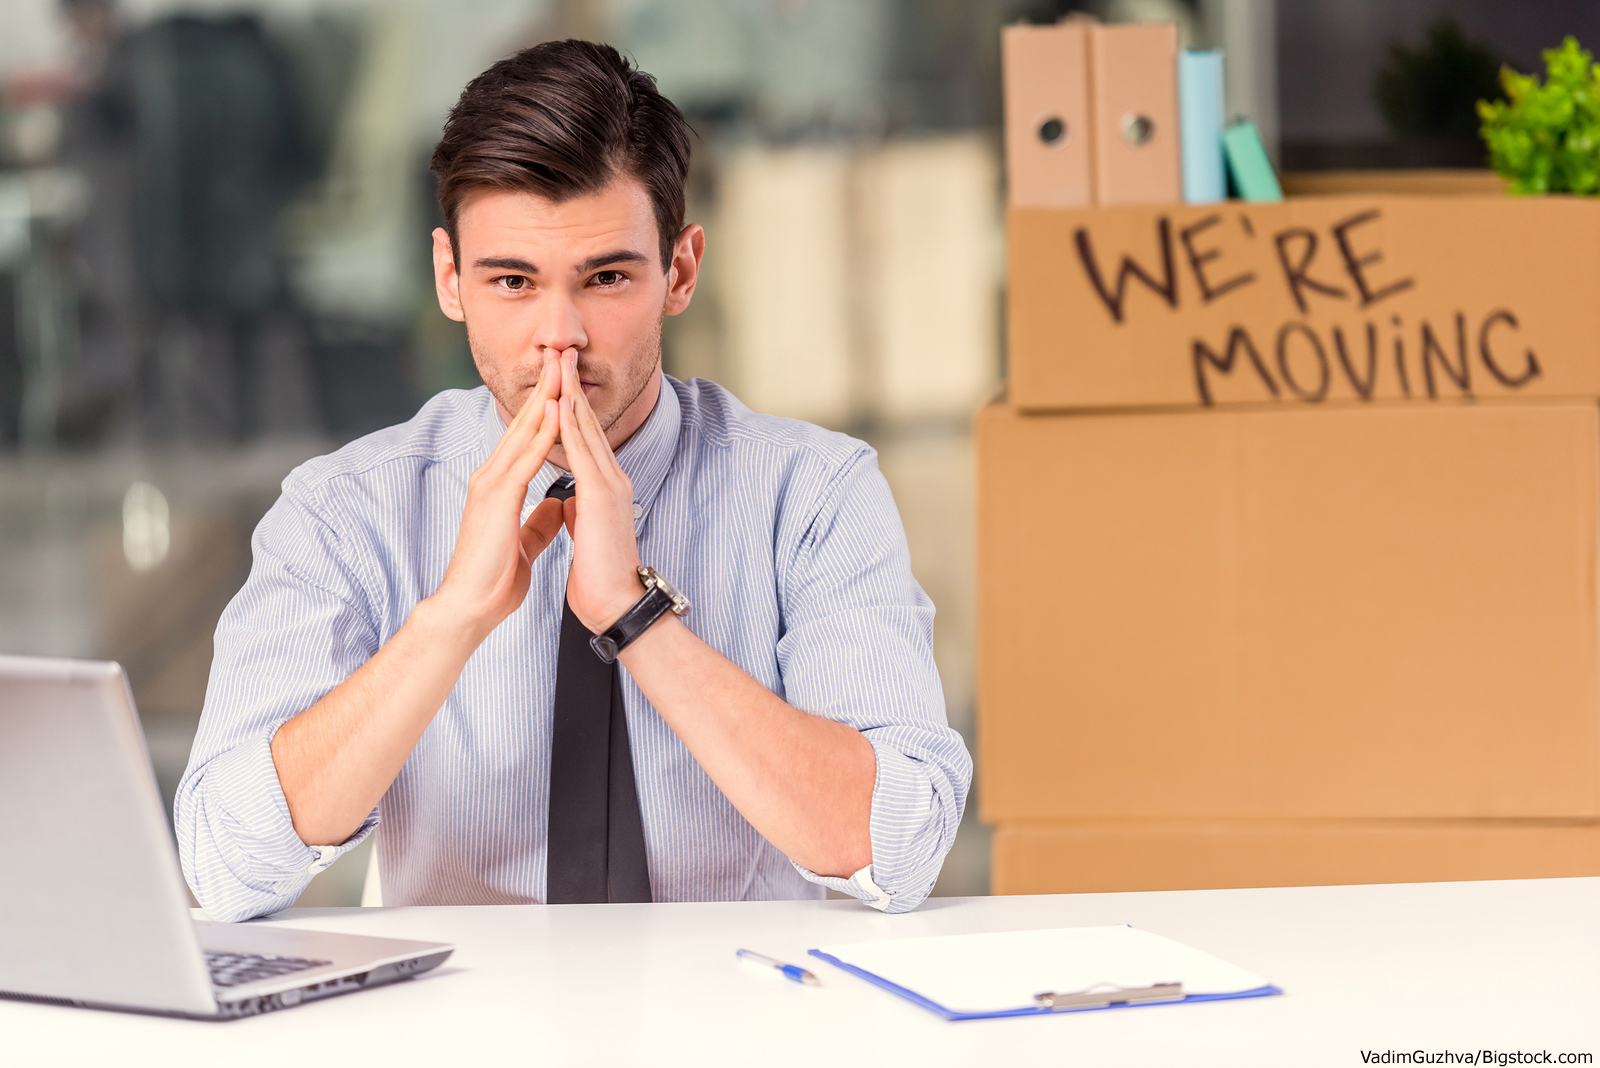 employee nervous about moving offices